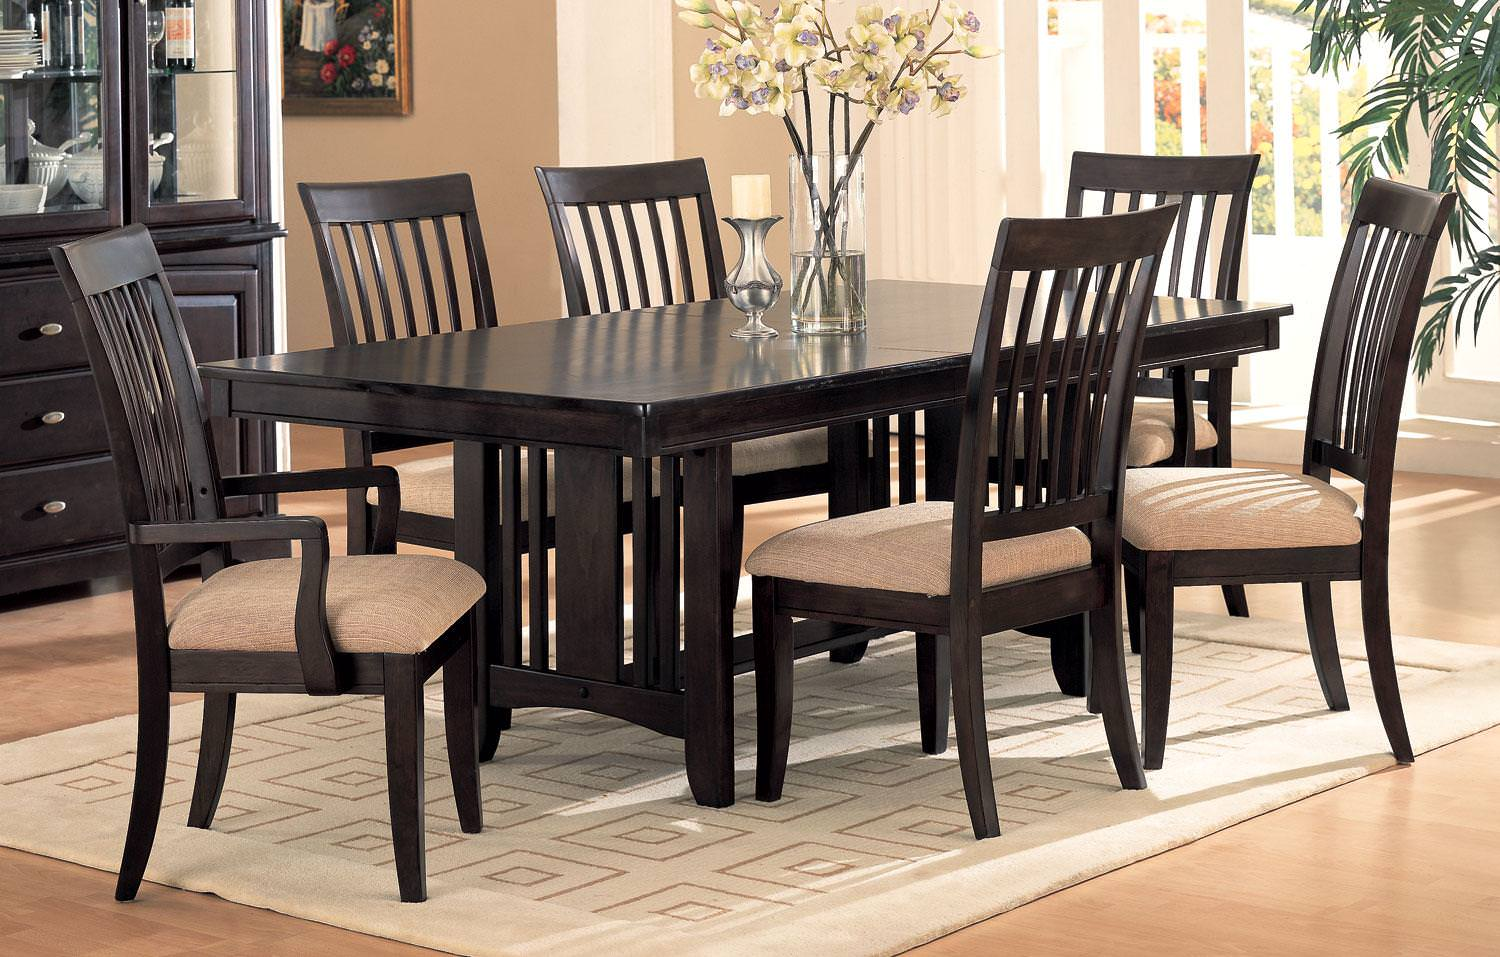 Floor Sample 100181 Dining Table By Coaster